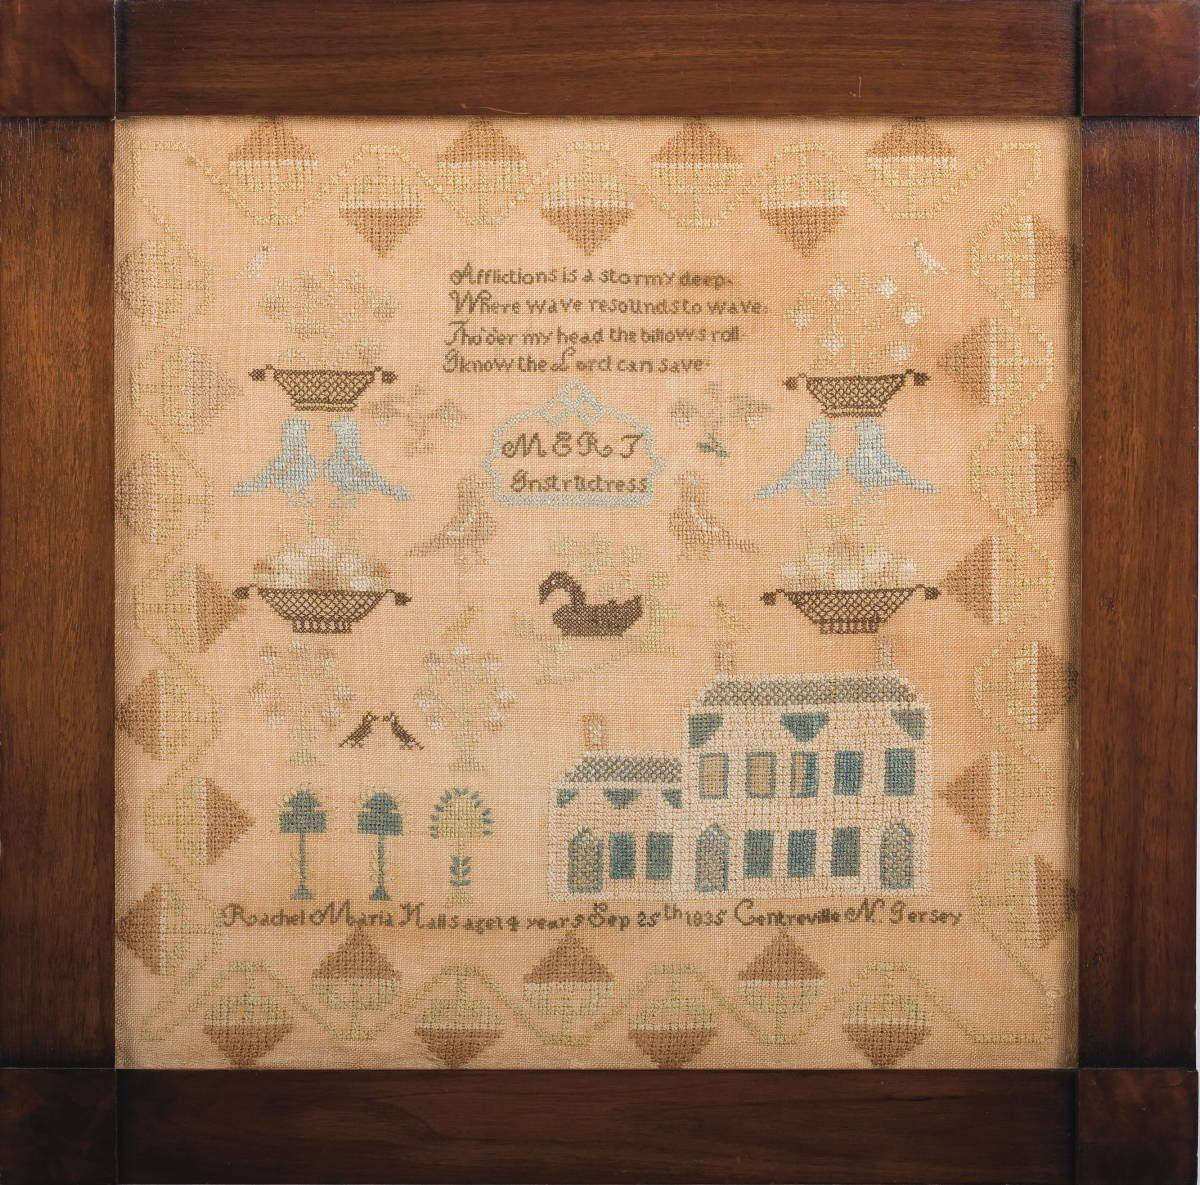 NEW JERSEY NEEDLEWORK SAMPLER BY RACHEL MARIA HALLS, AGE 4 YEARS, 1835. Amazing that a 4 year old wrought this sampler!